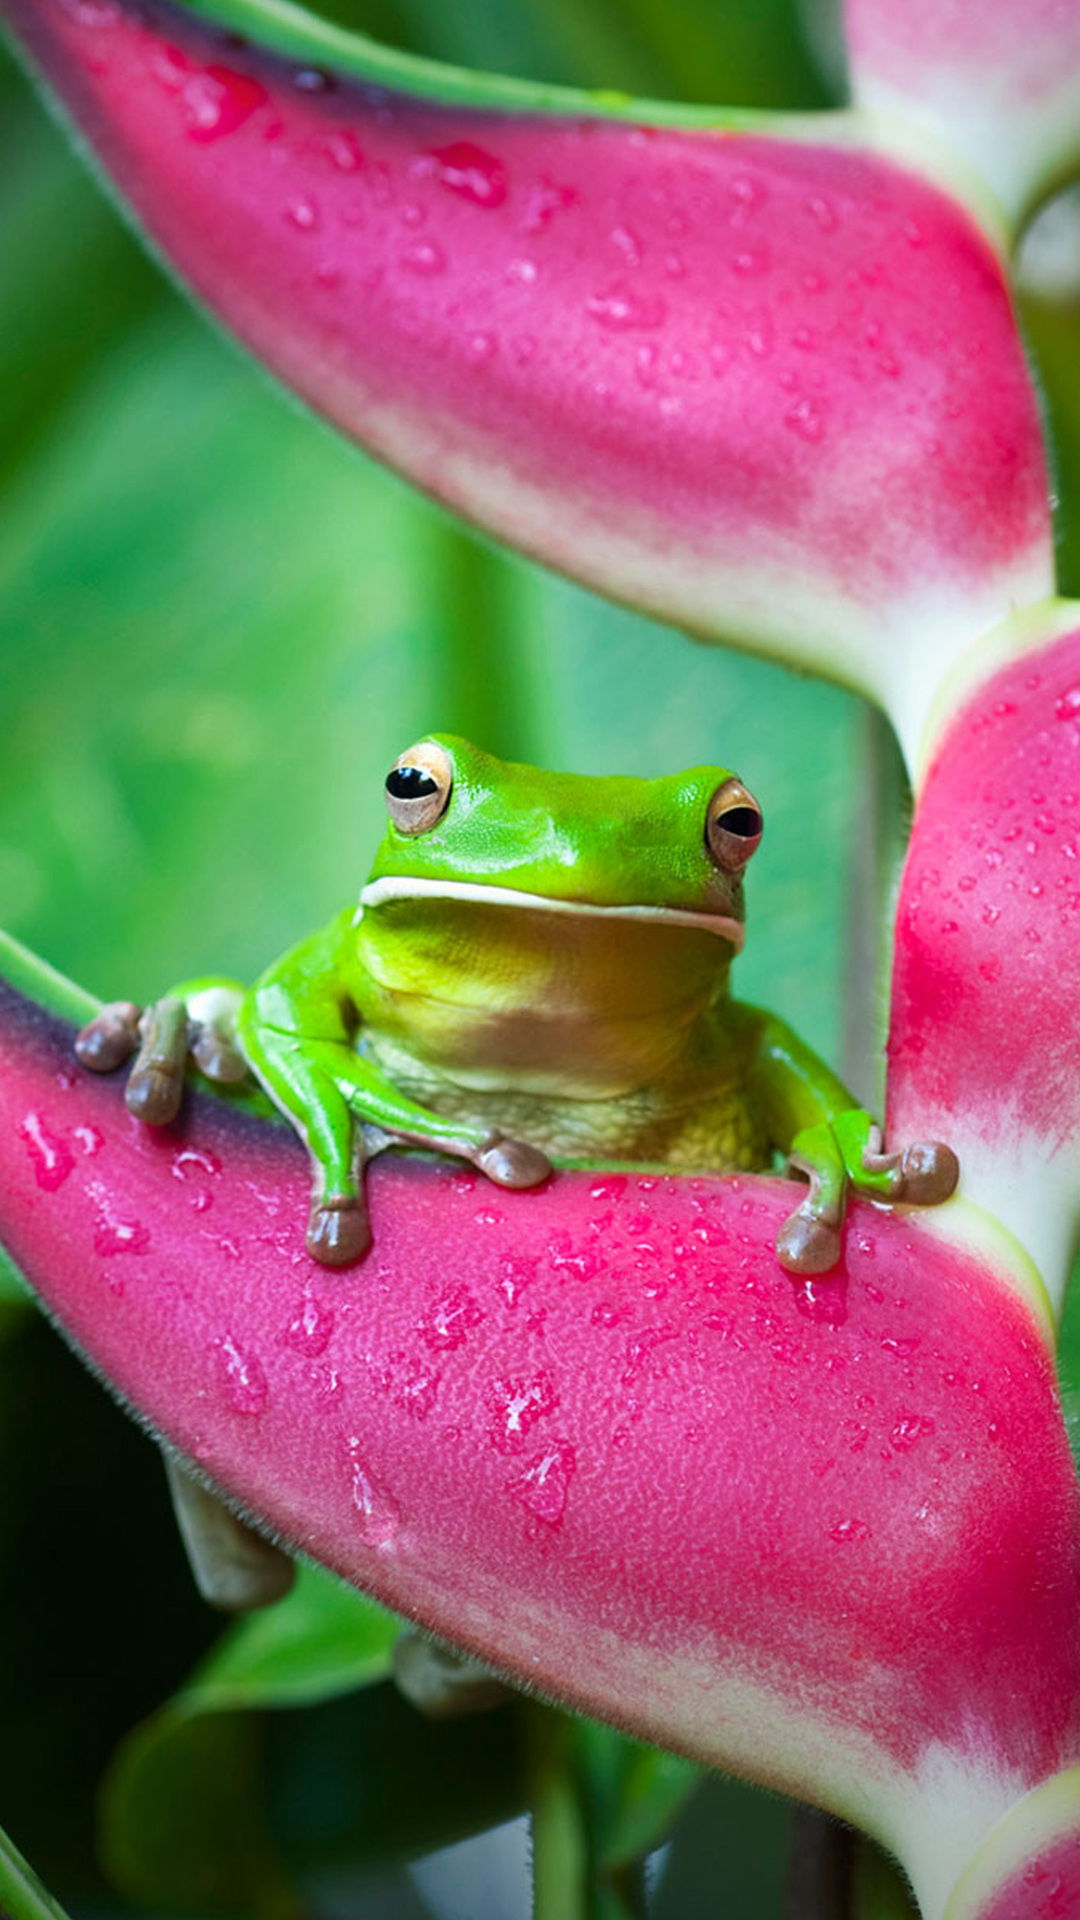 White-lipped tree frog (Litoria infrafrenata) on a heliconia flower in Cairns, Queensland, Australia ((C) Andrew Watson/ Getty Images)